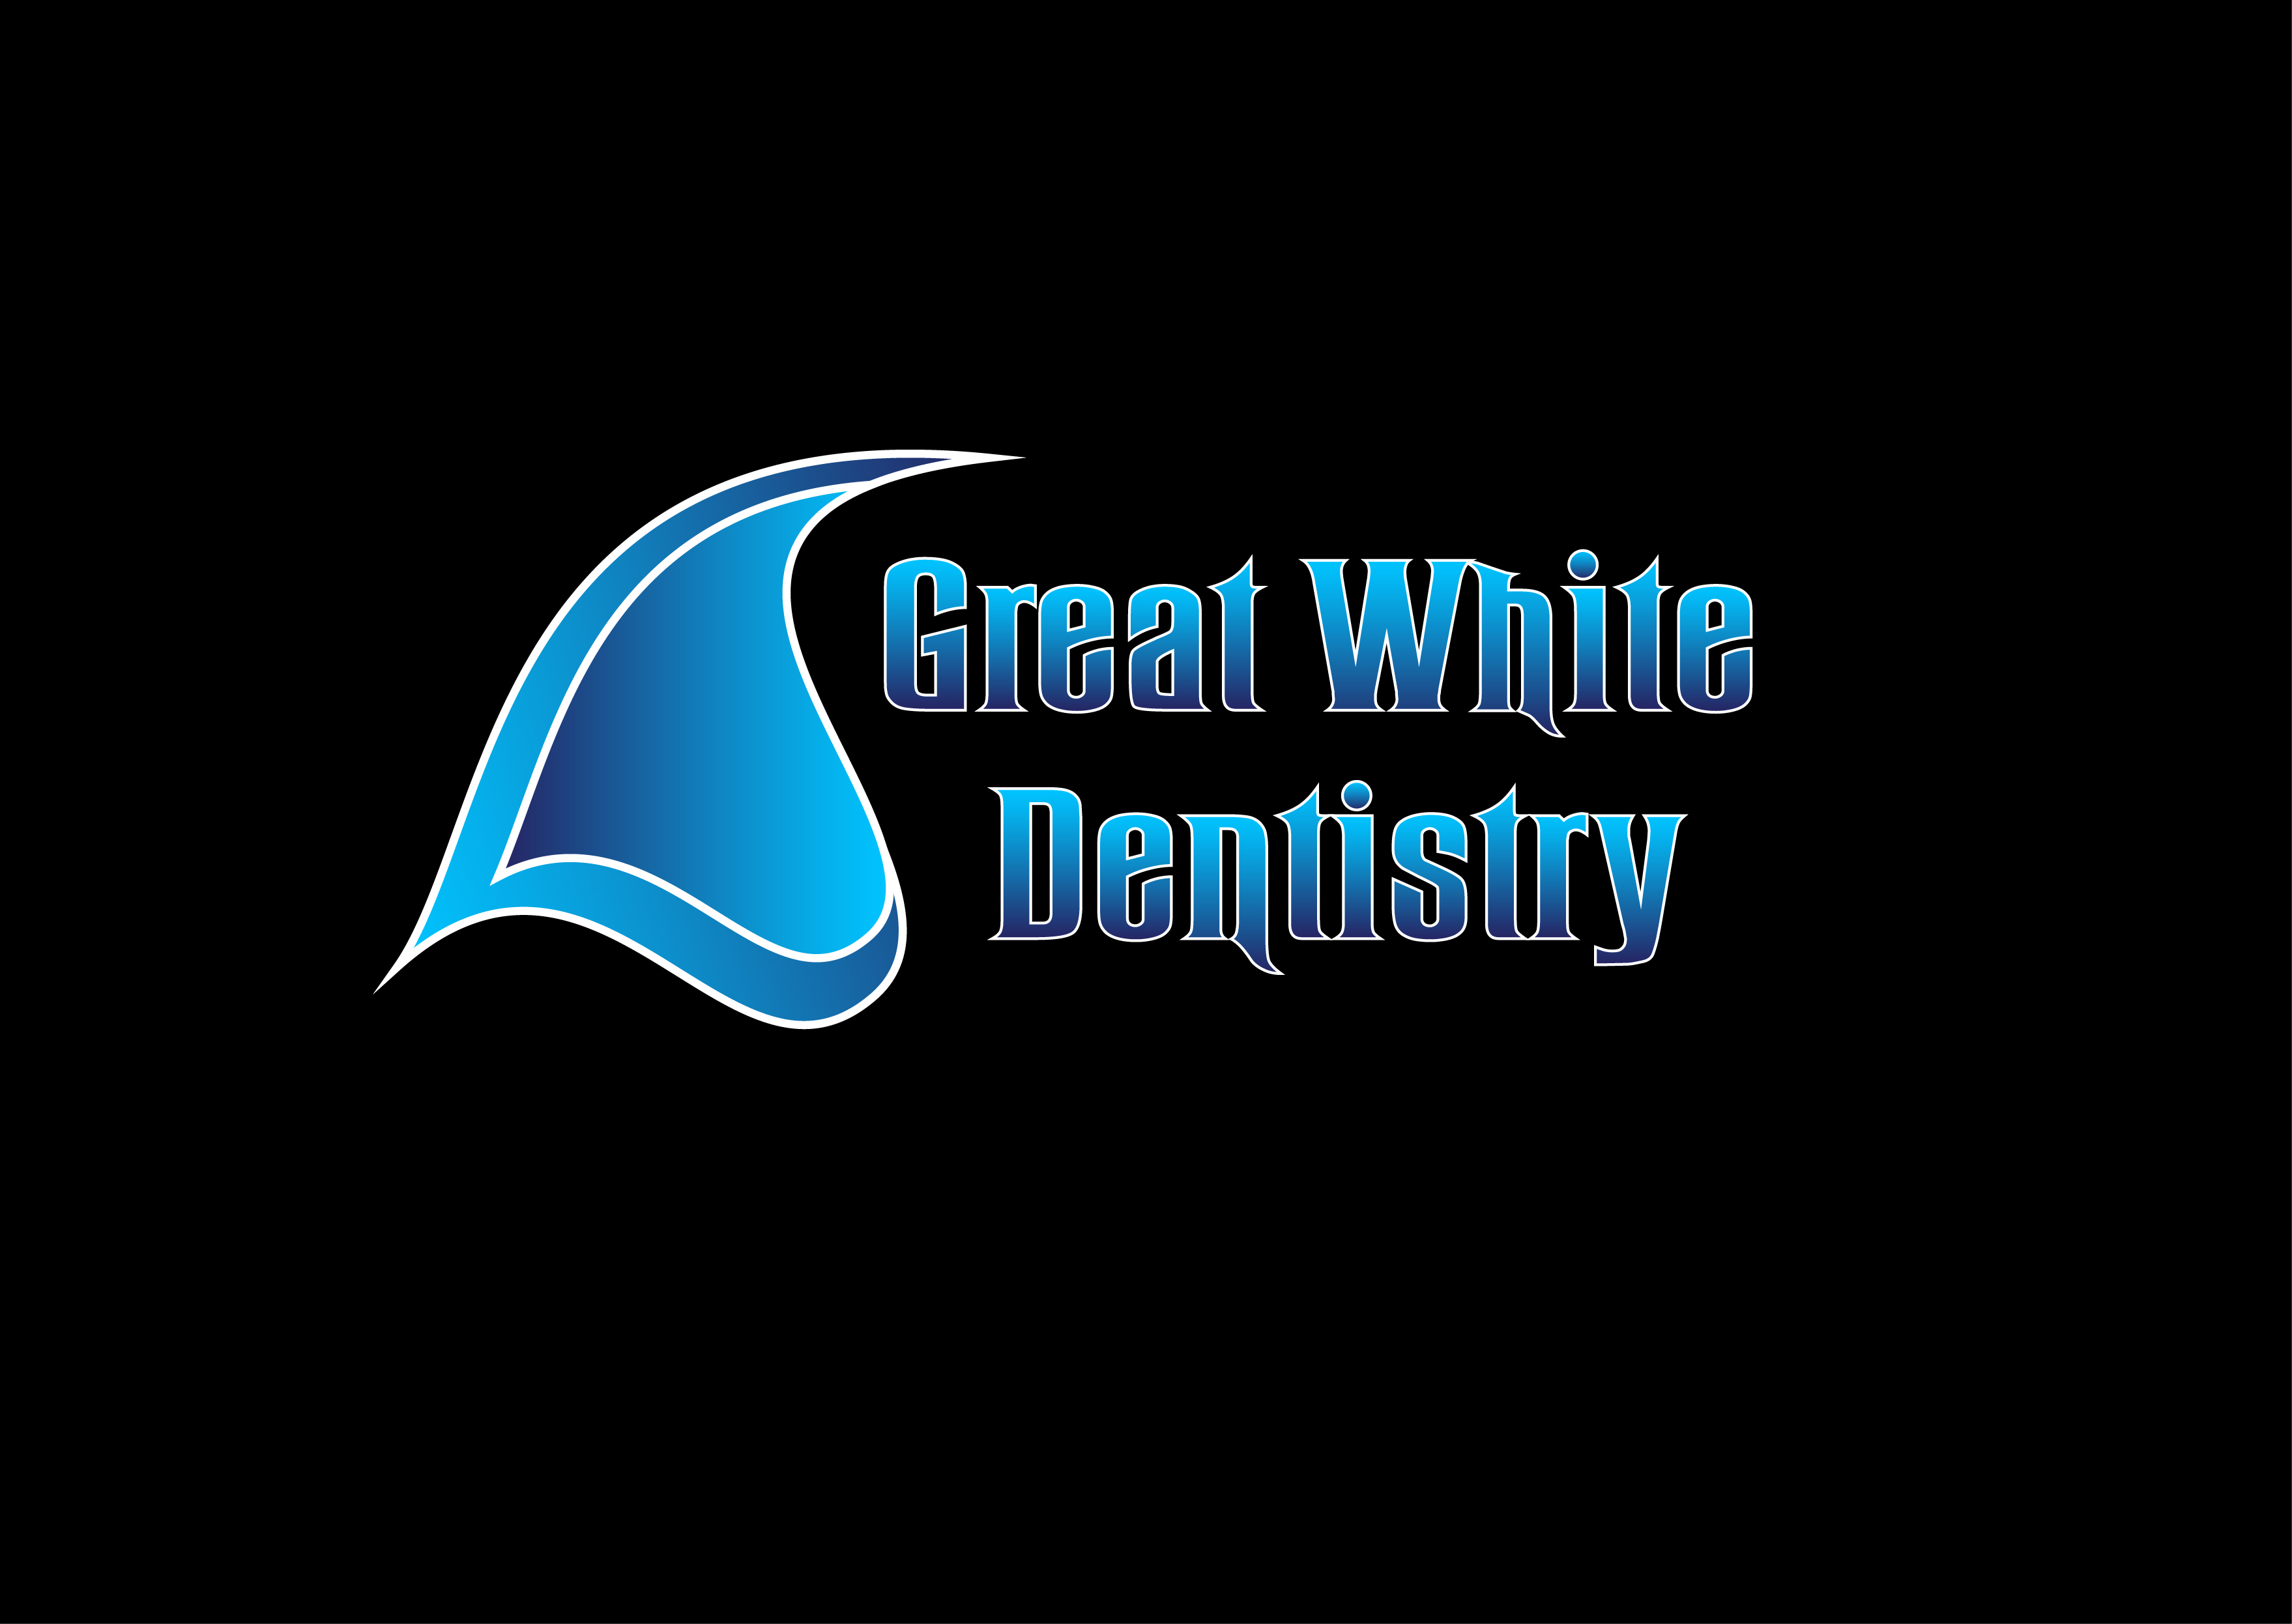 Logo Design by 3draw - Entry No. 153 in the Logo Design Contest Logo Design for Great White Dentistry.